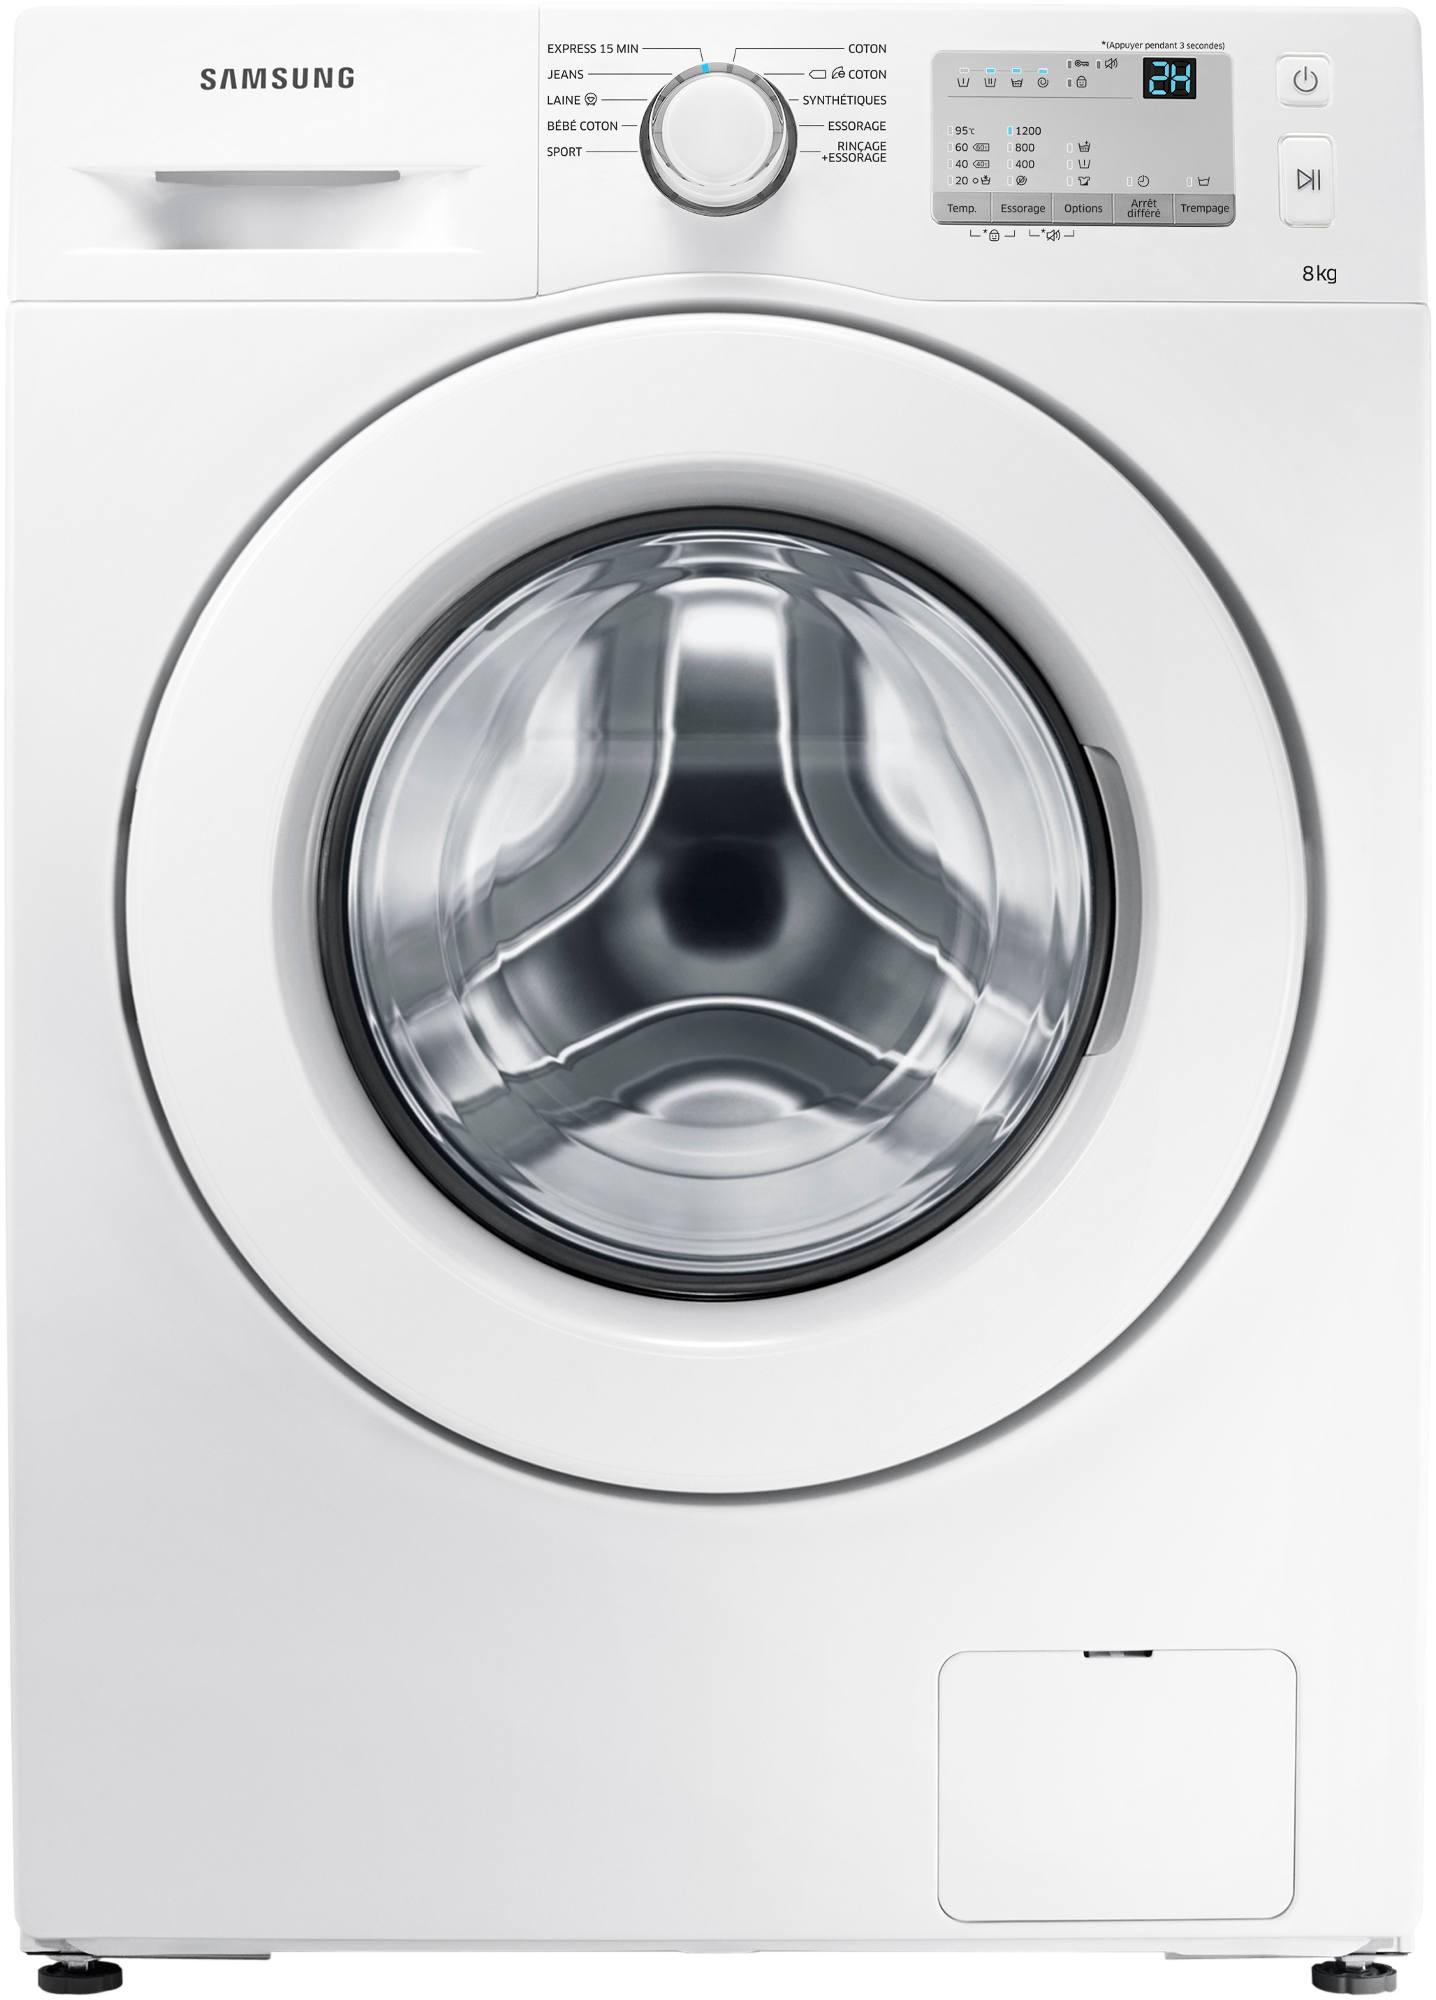 SAMSUNG - WW80J3283KW - 8kg - 1200 trs/mn -  A+++ - Touches sensitives